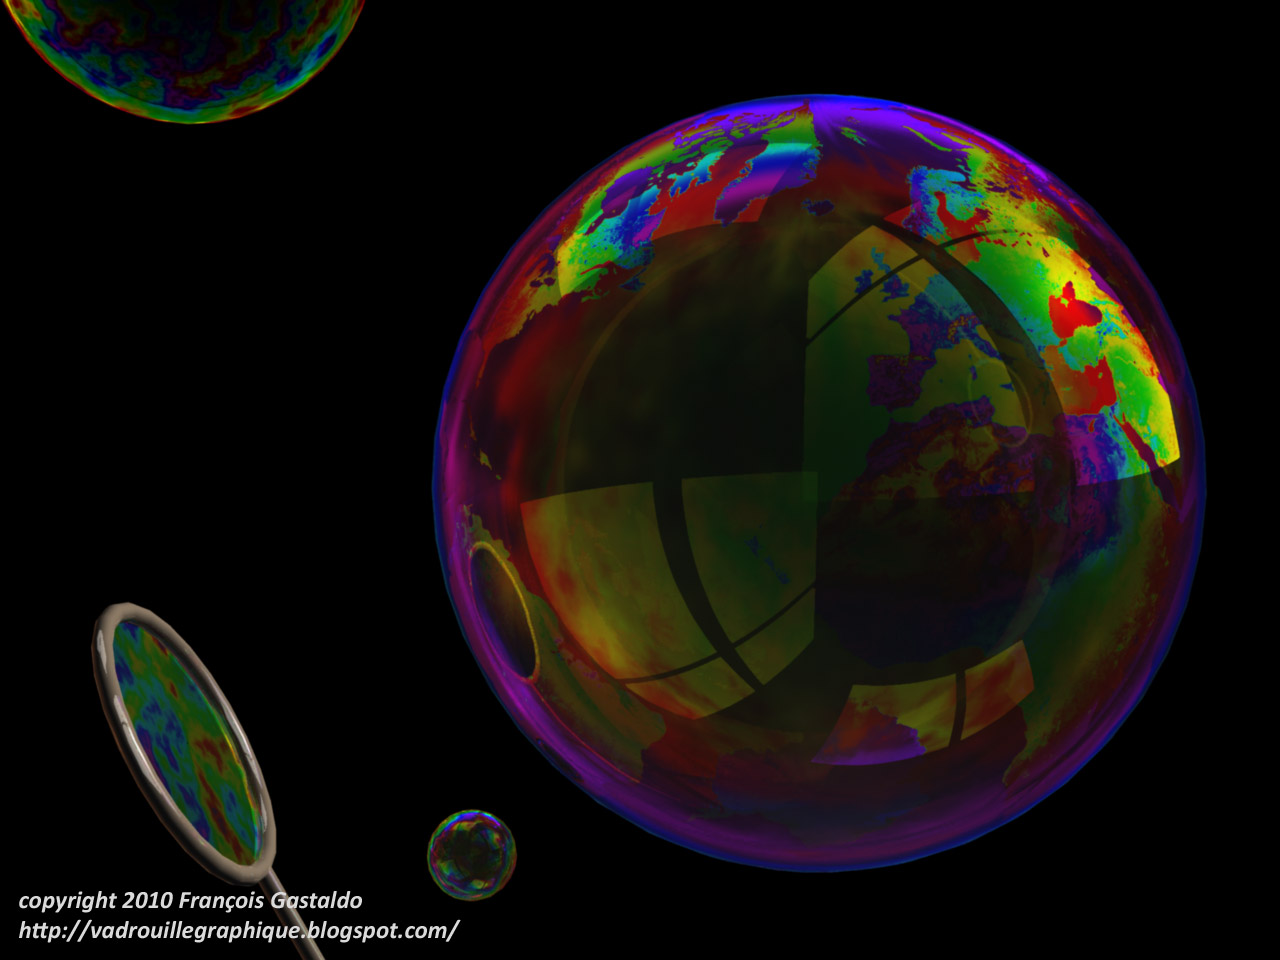 3d Bubbles Wallpaper: Email This BlogThis! Share To Twitter Share To Facebook